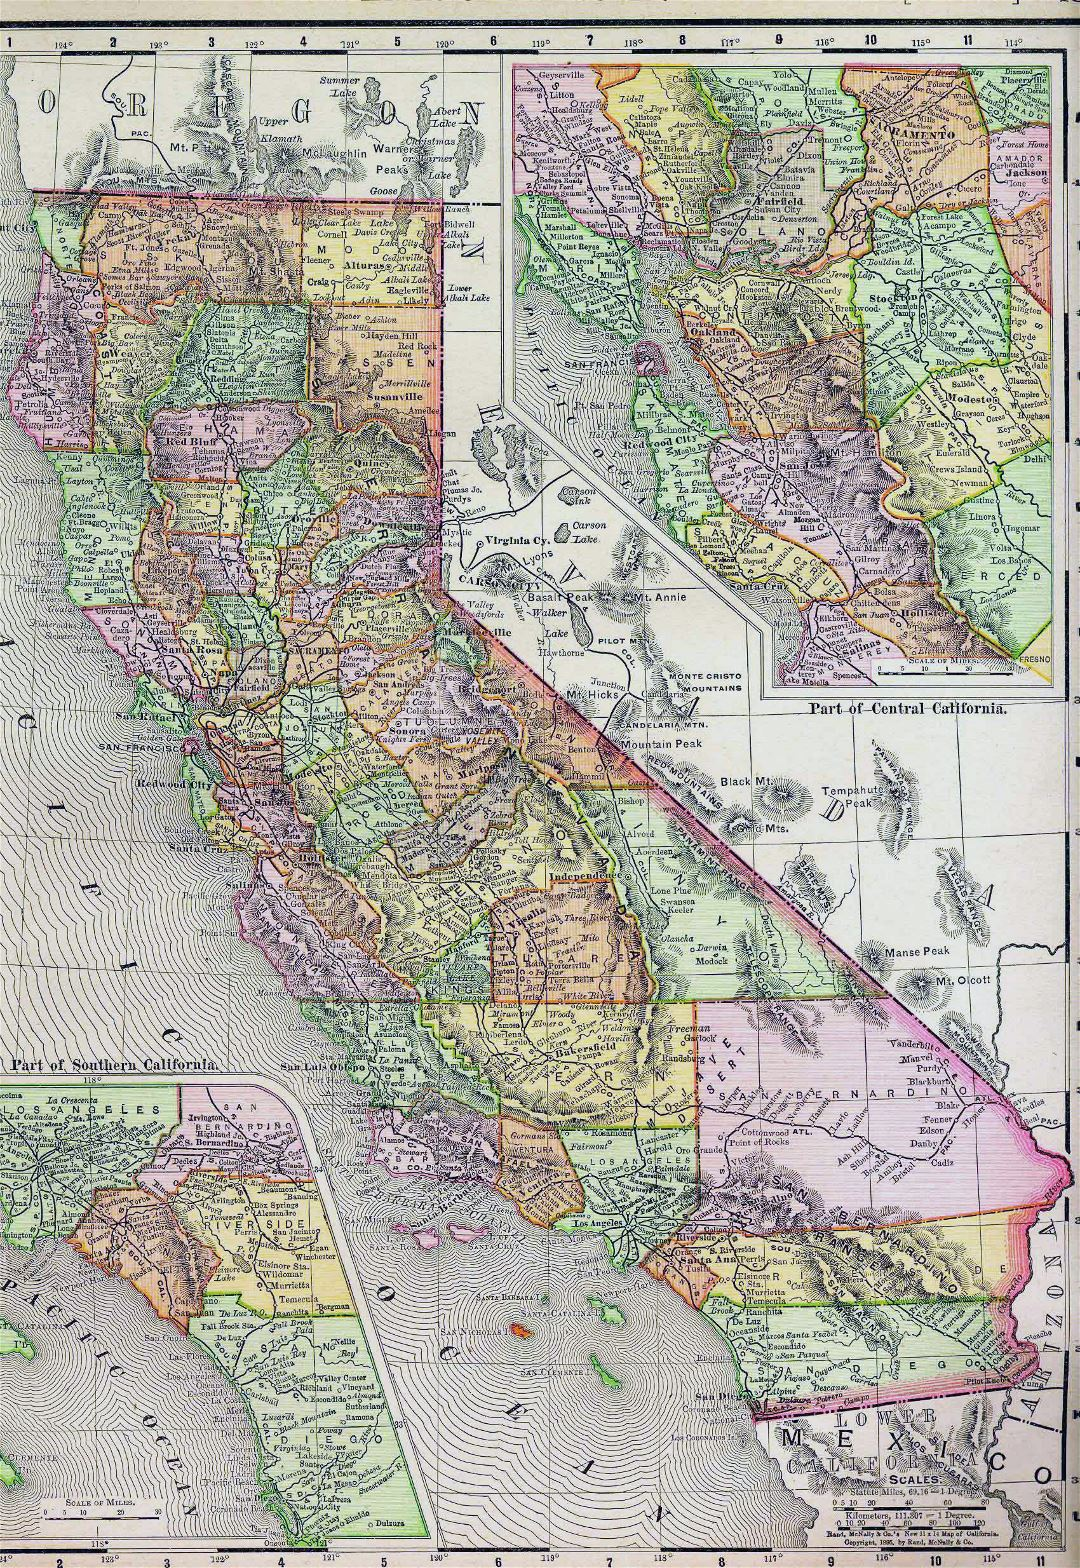 Detaled old administrative map of California state - 1895